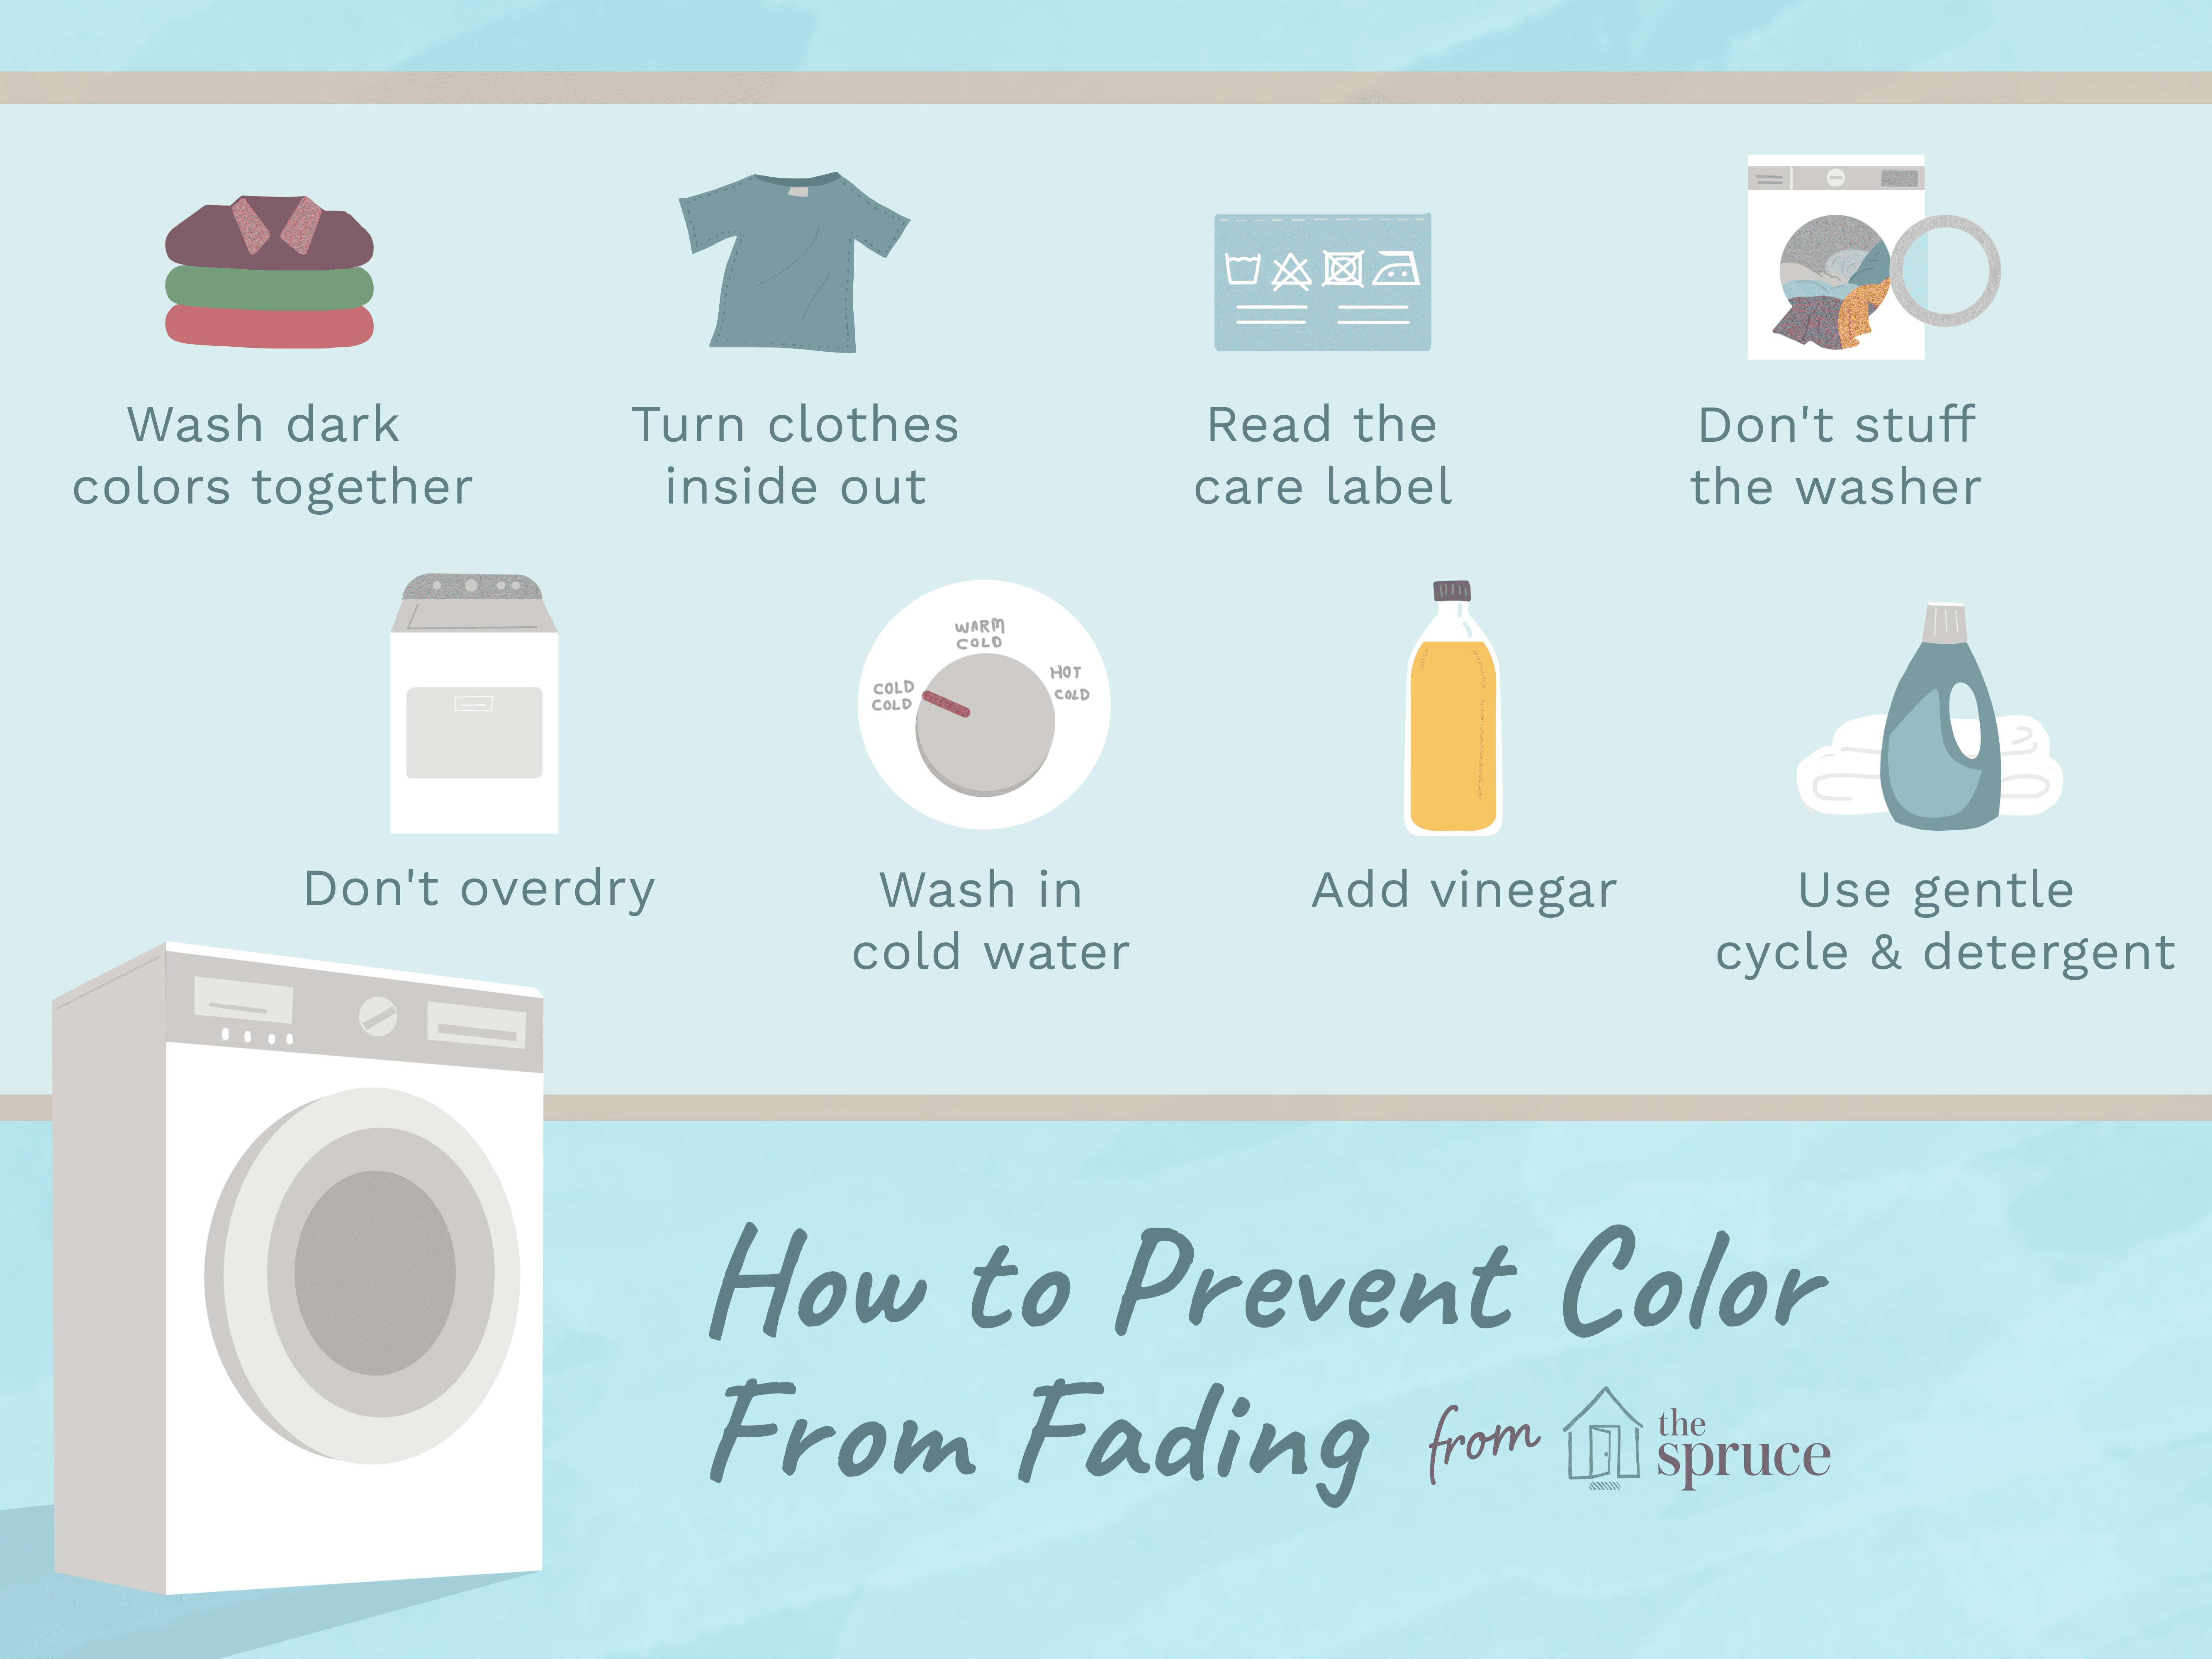 Top Tips To Prevent Colors From Fading